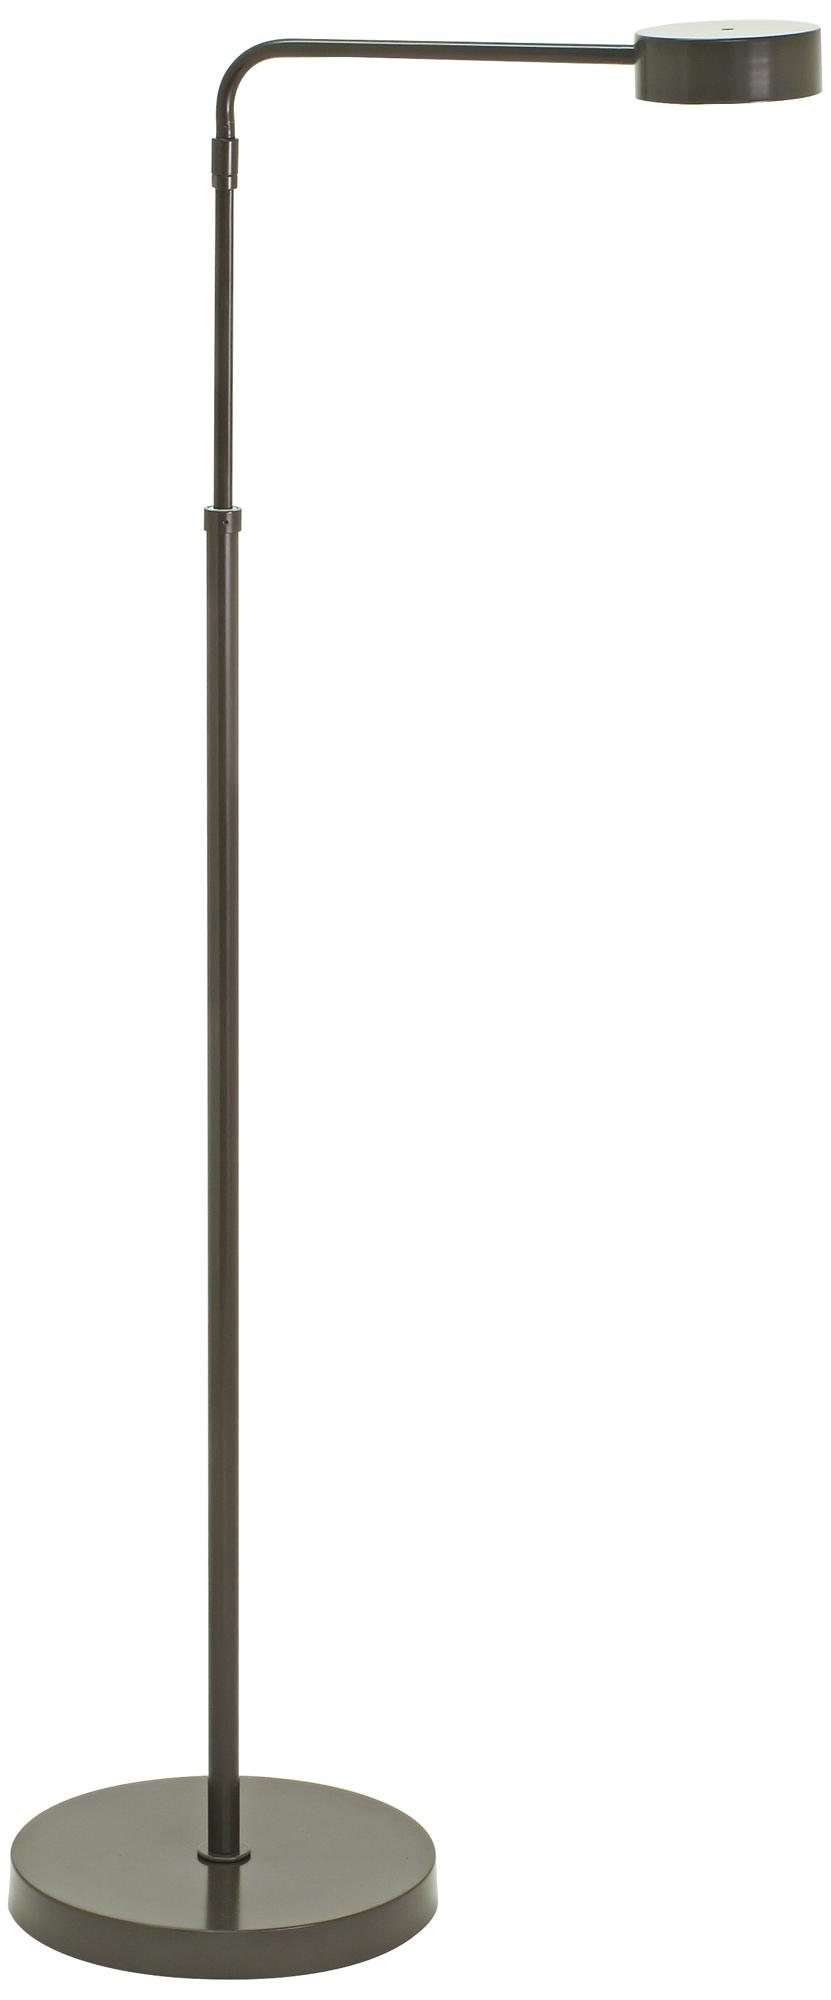 Generation Adjustable Architectural Bronze LED Floor Lamp (1D704)